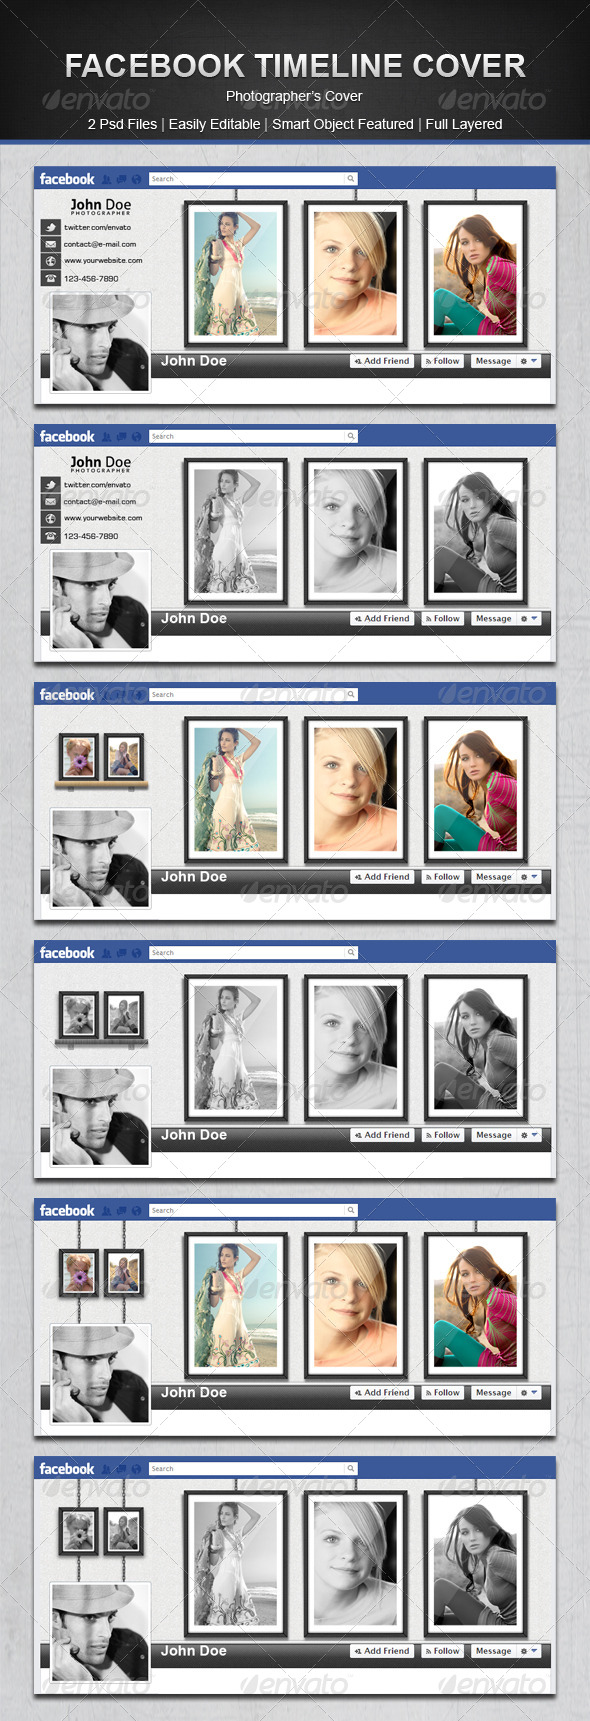 GraphicRiver Facebook Timeline Cover 4712250